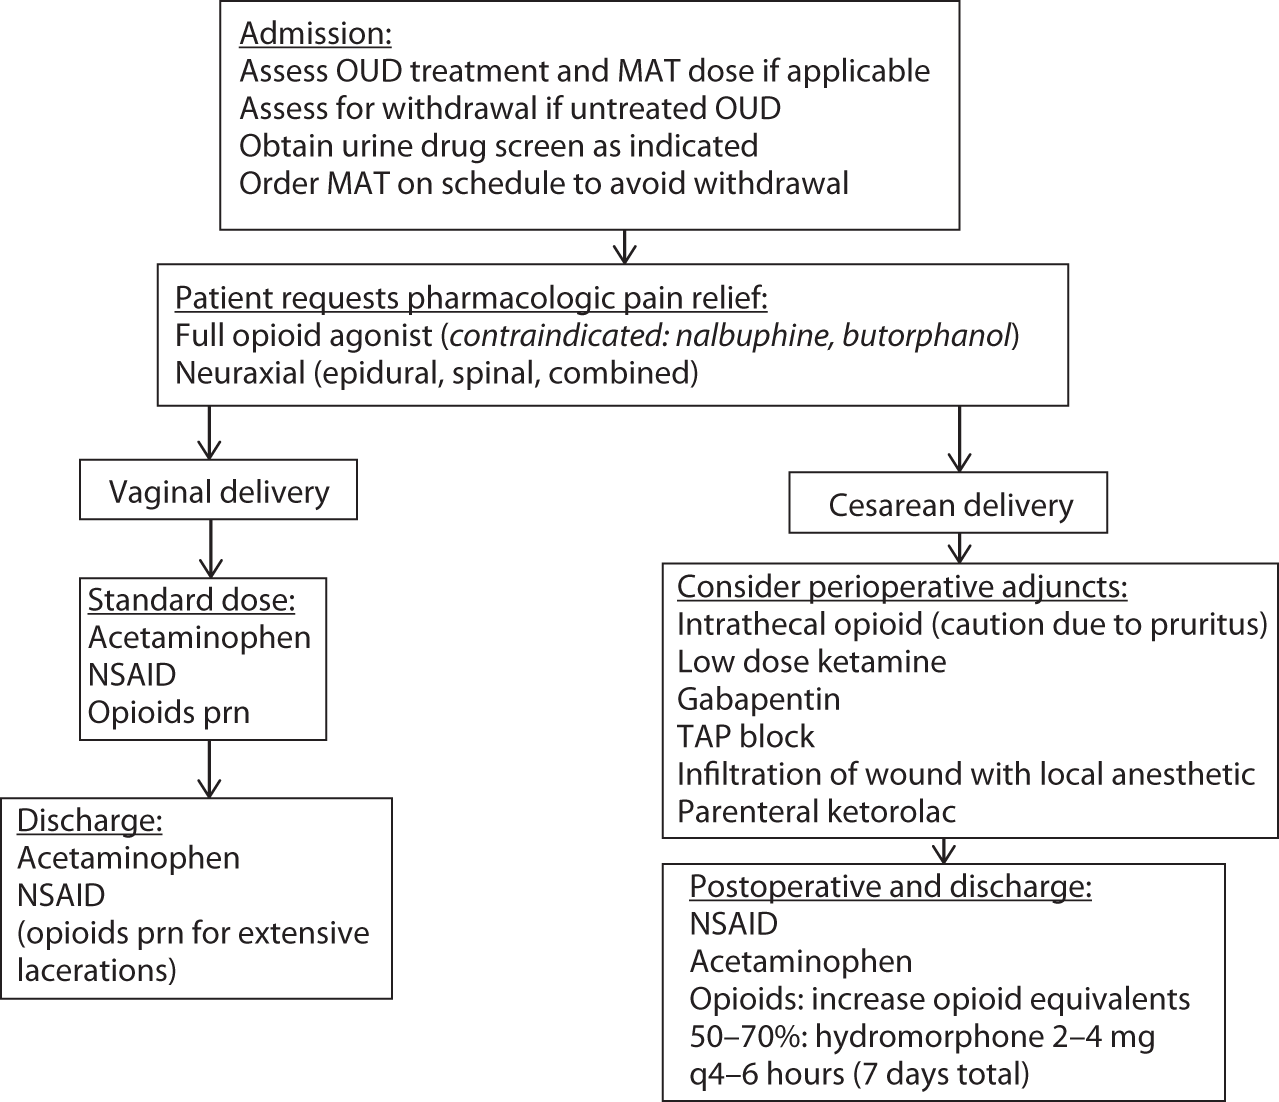 Antepartum and Intrapartum Care (Section 2) - Opioid-Use